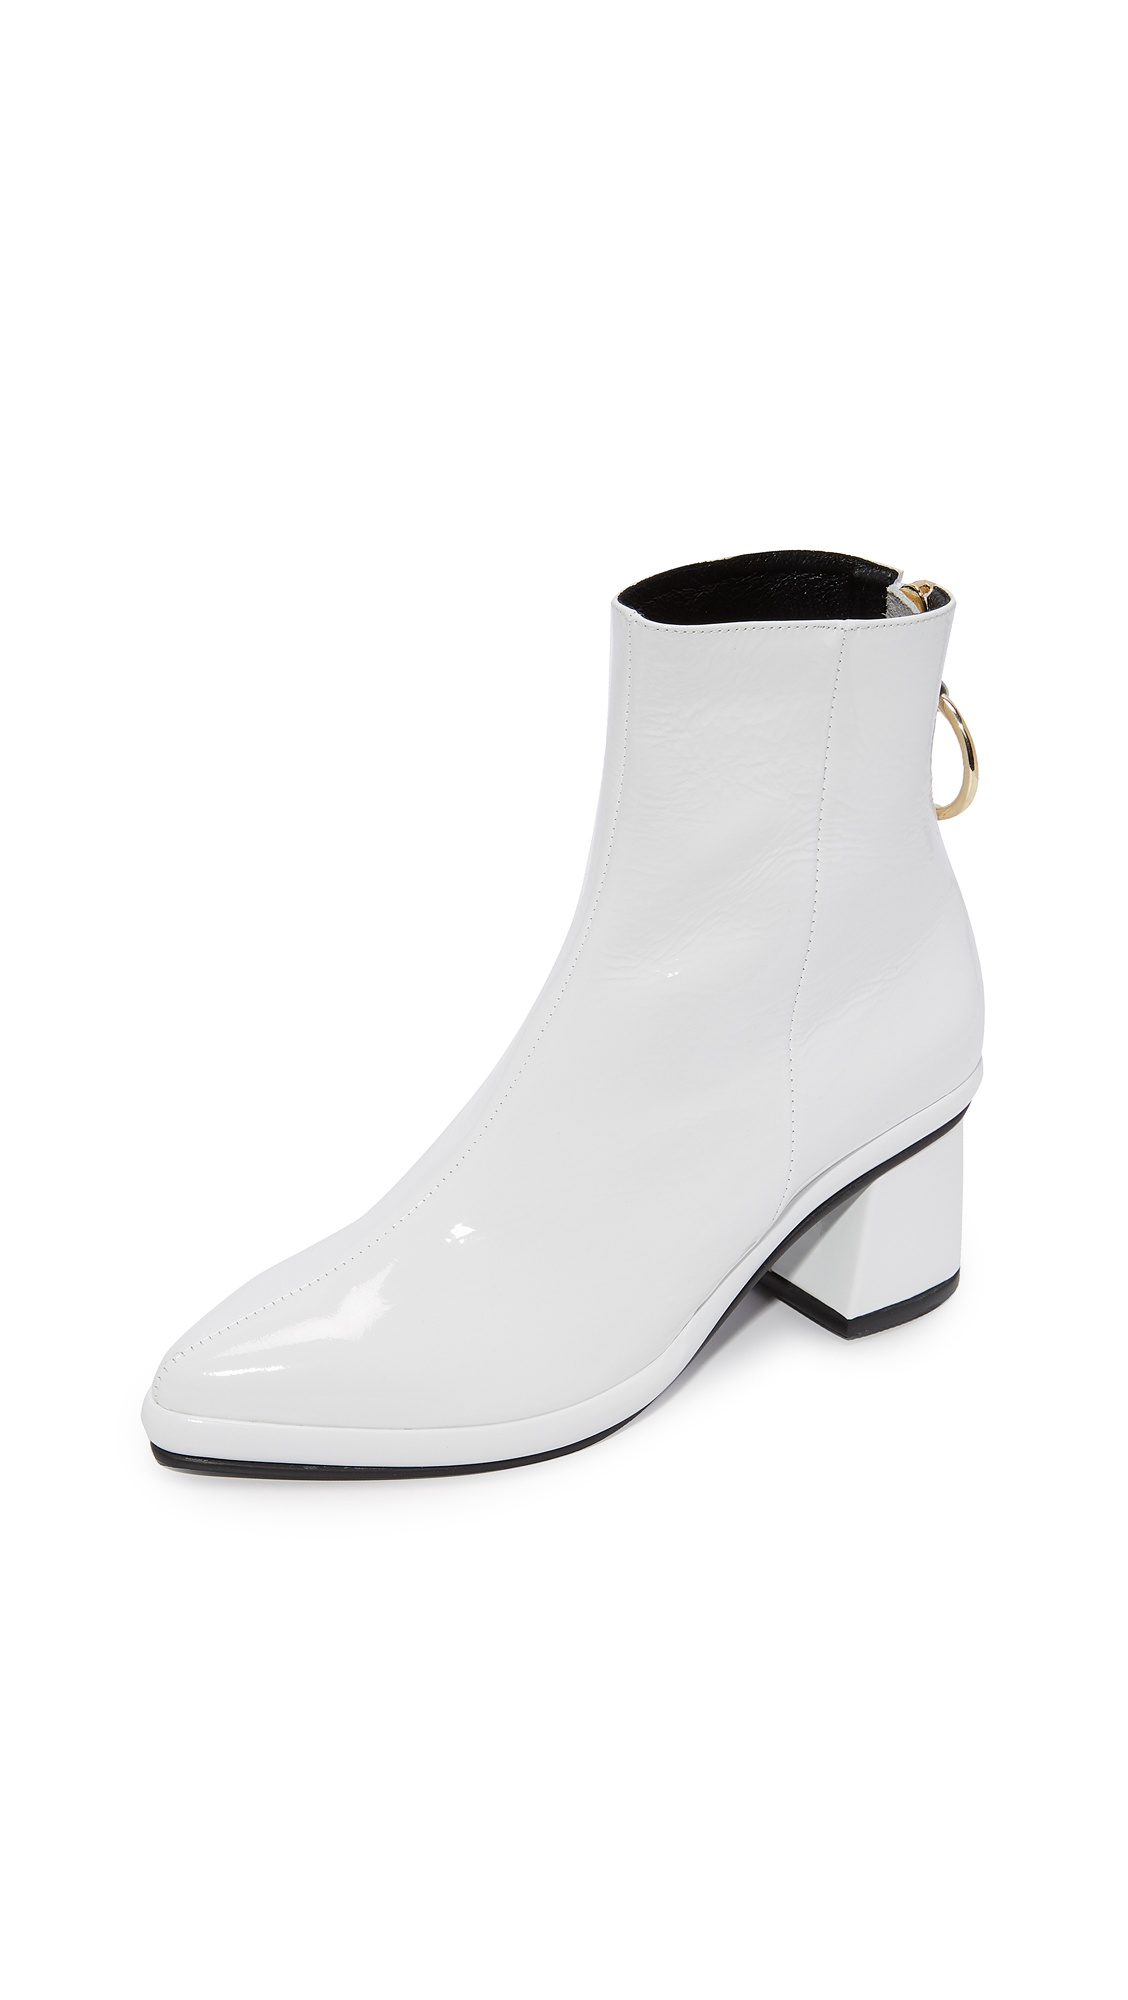 Reike Nen Ring Mid Booties In White